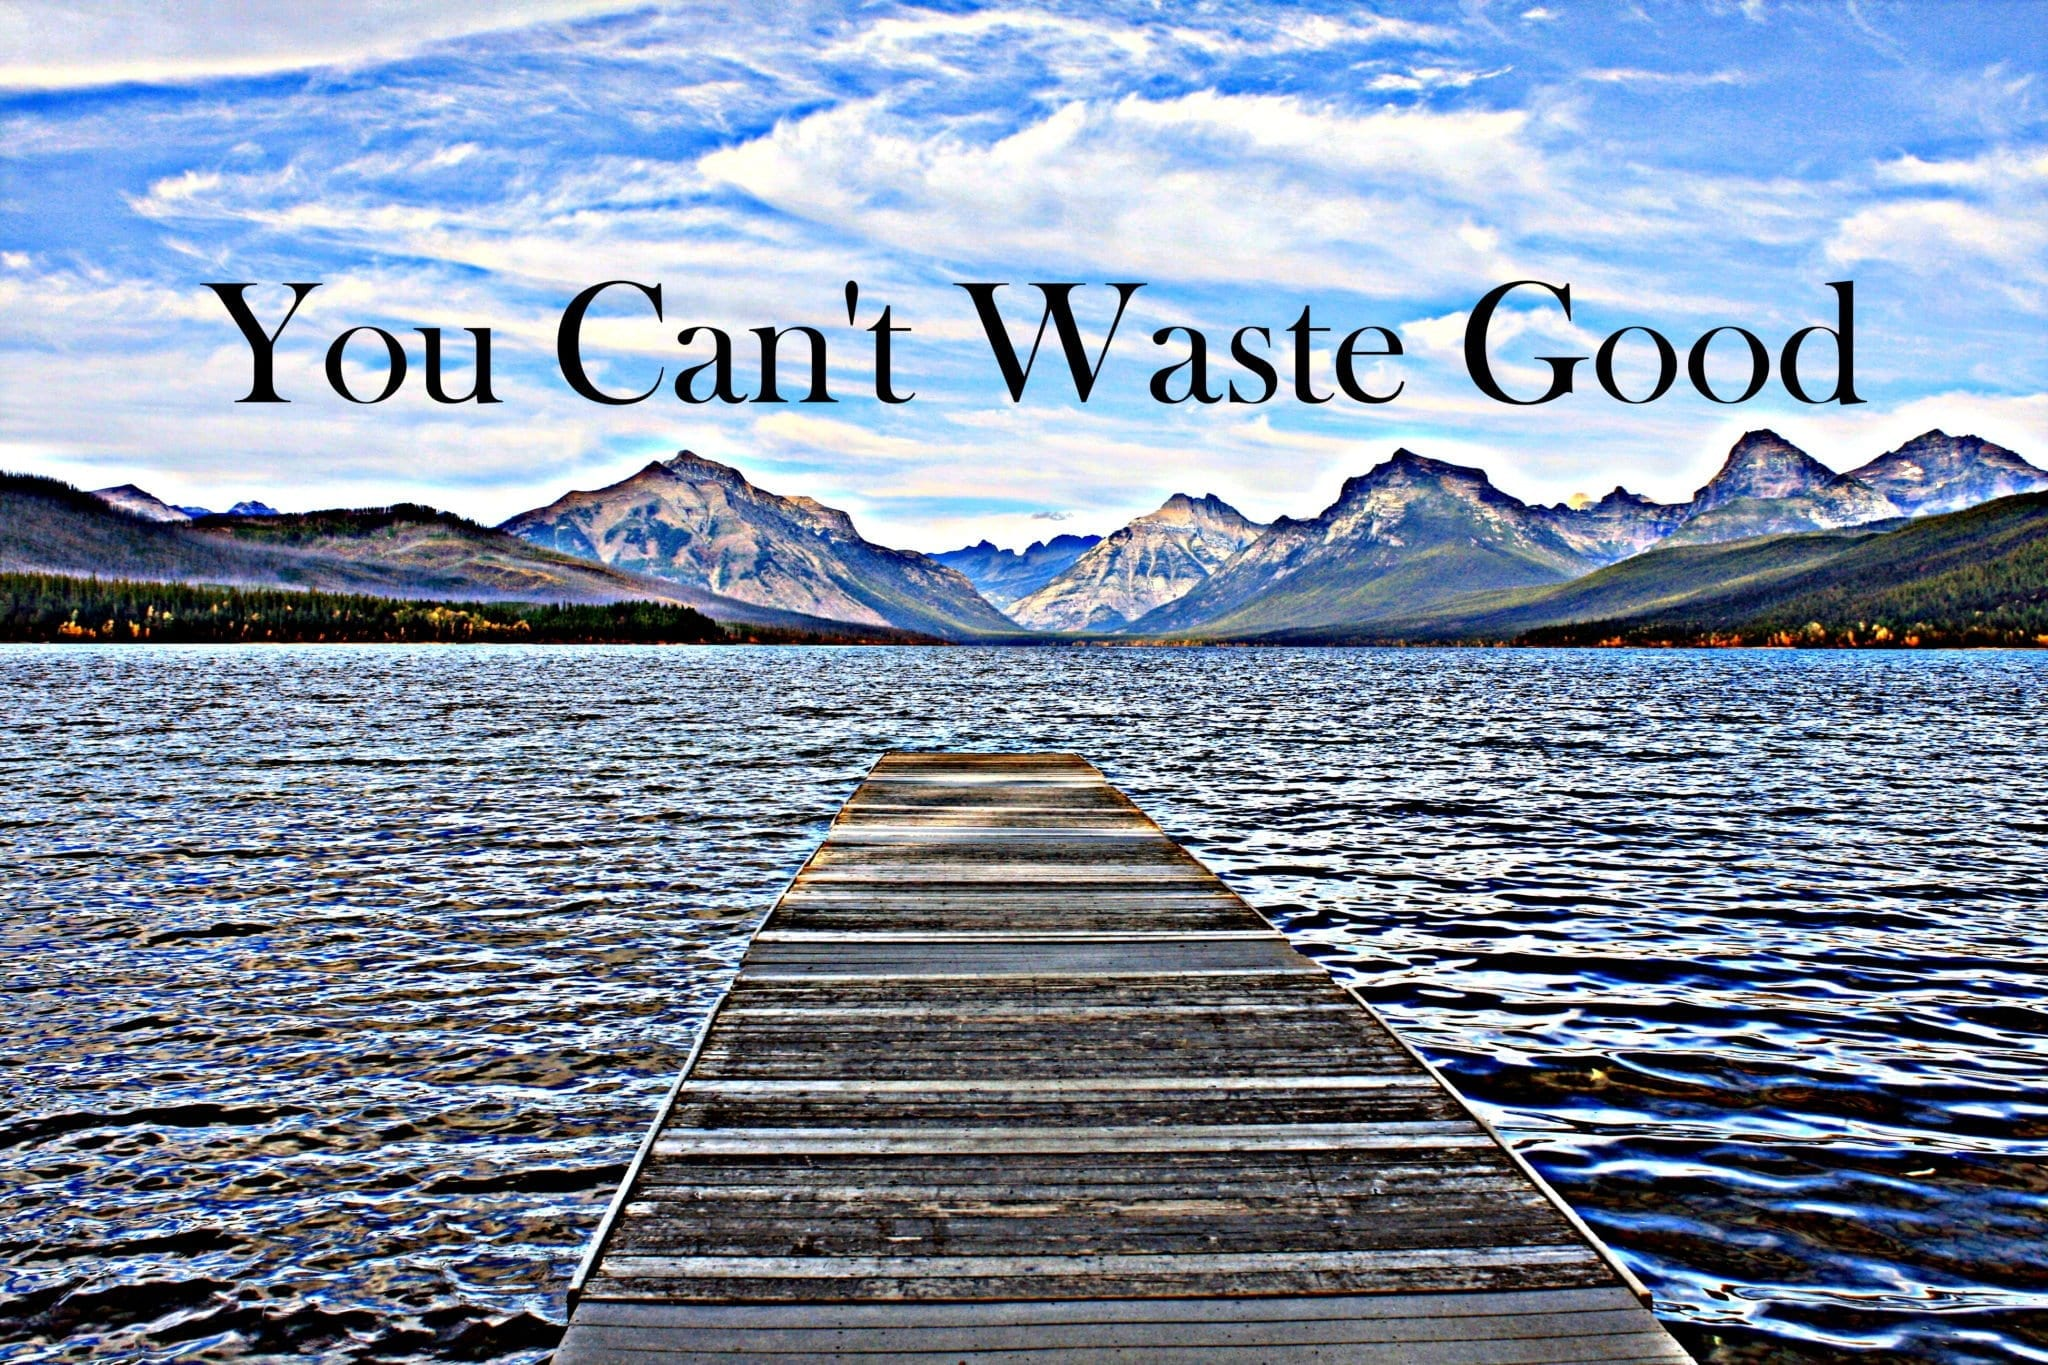 You Can't Waste Good